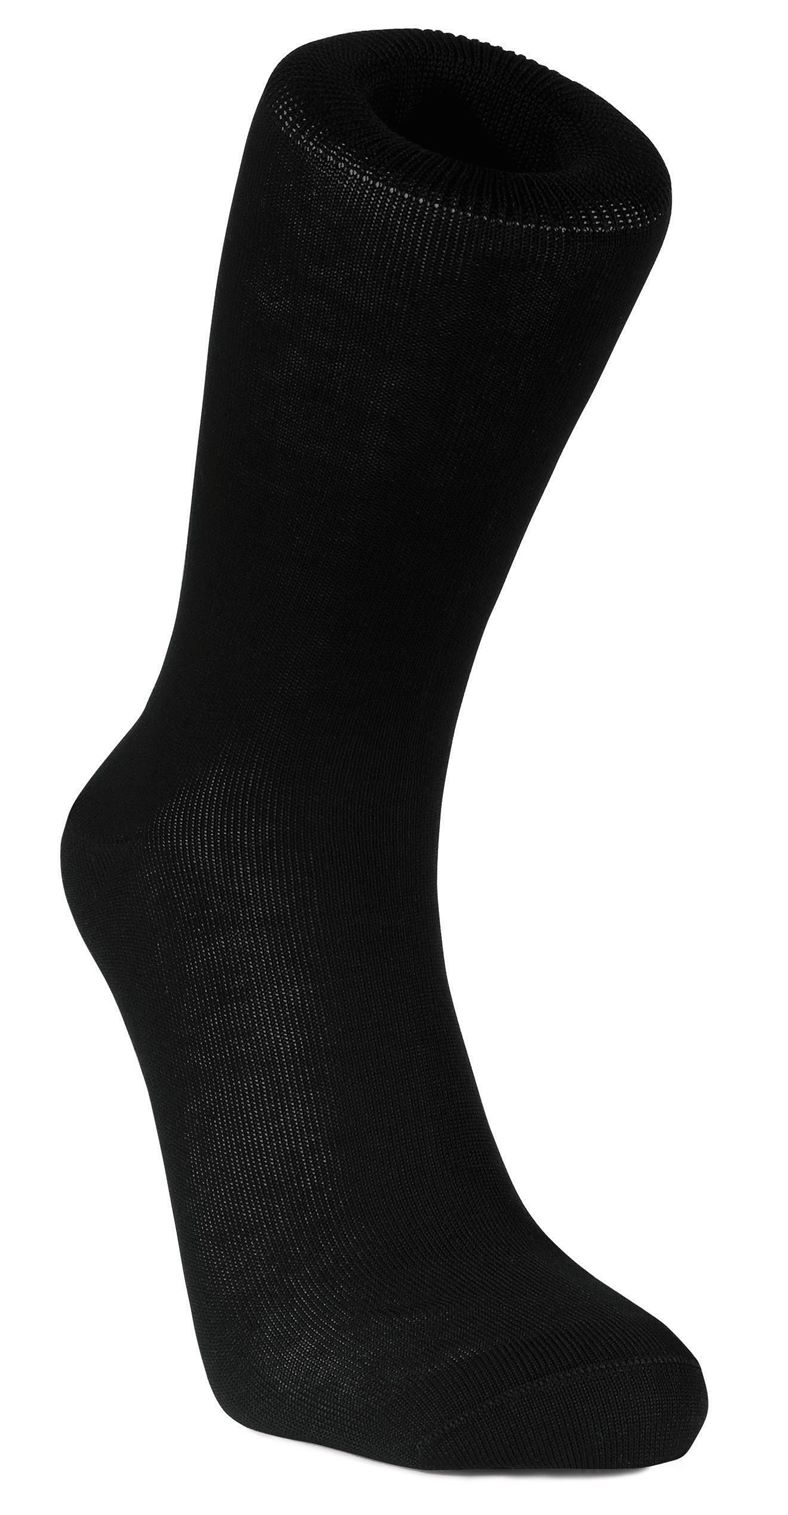 Mens Business Sock Cotton (Negro)